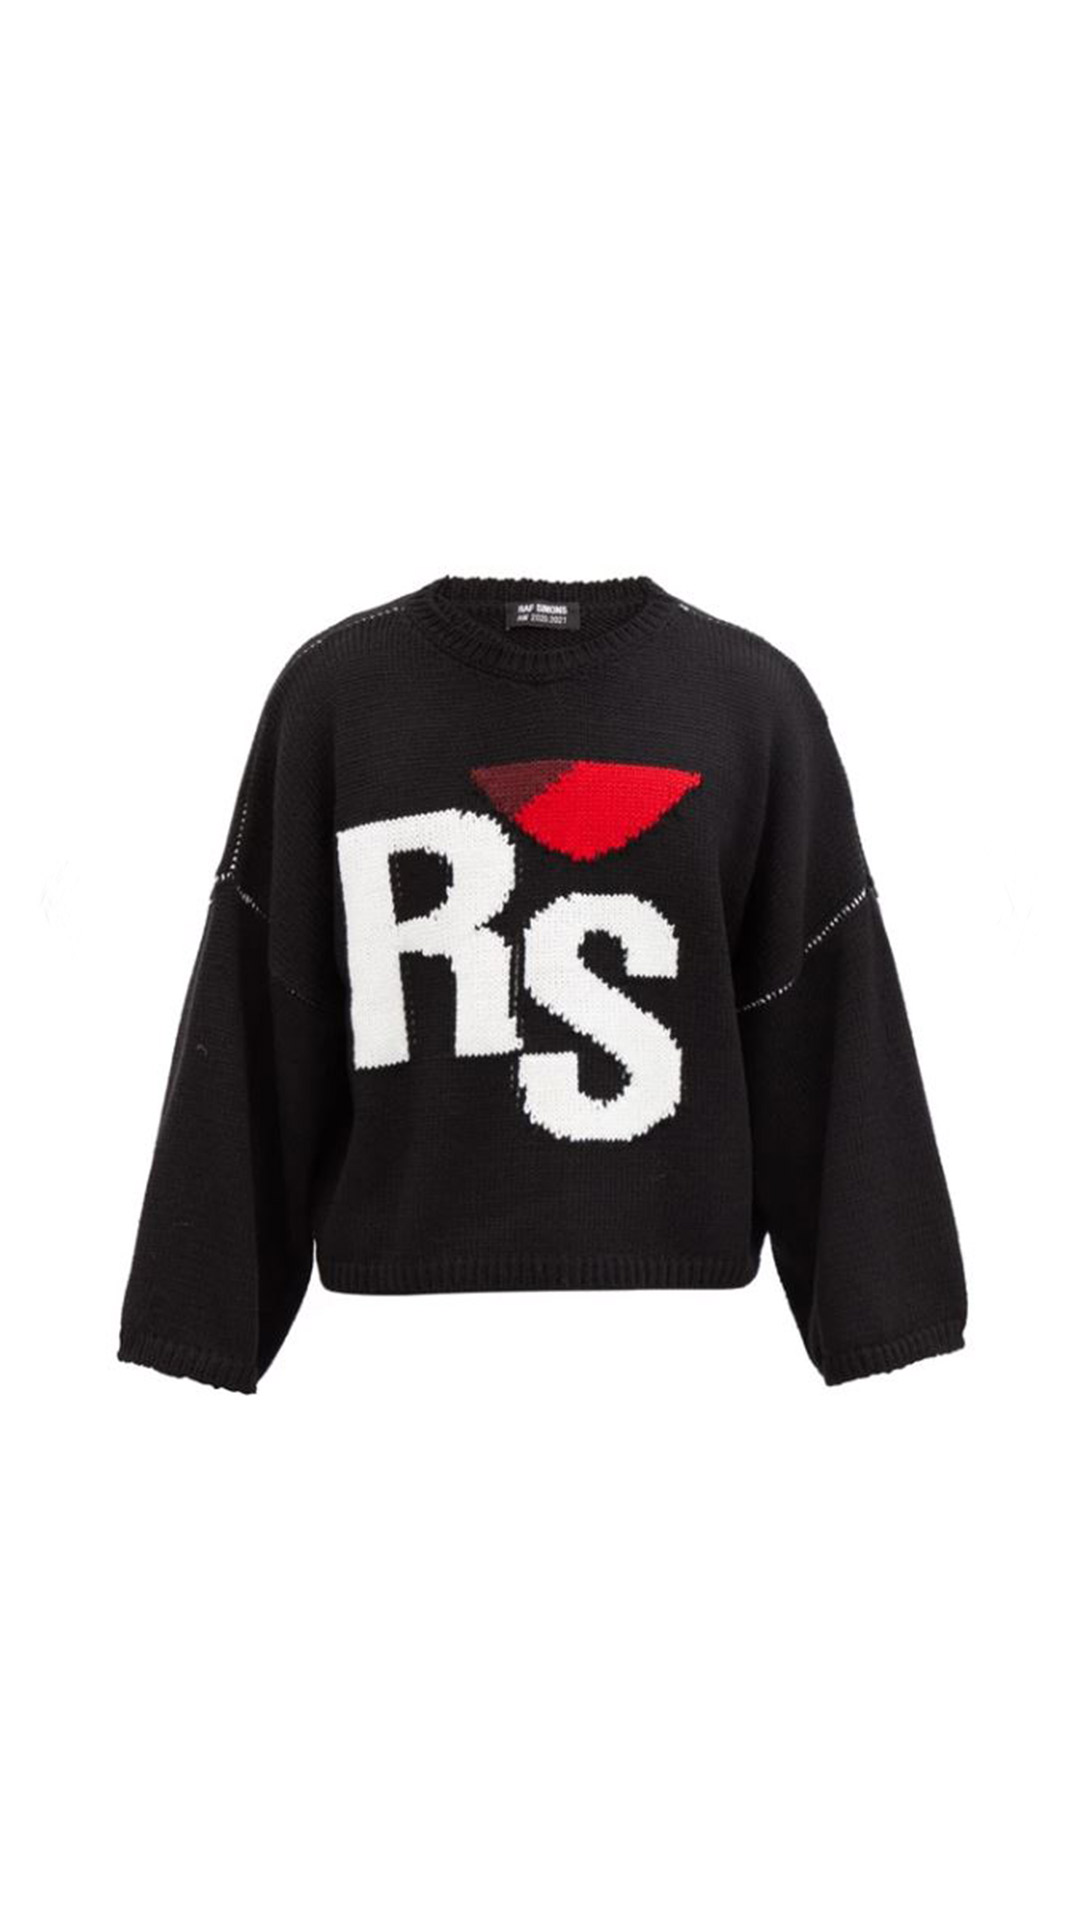 RAF SIMONS Oversized Sweater